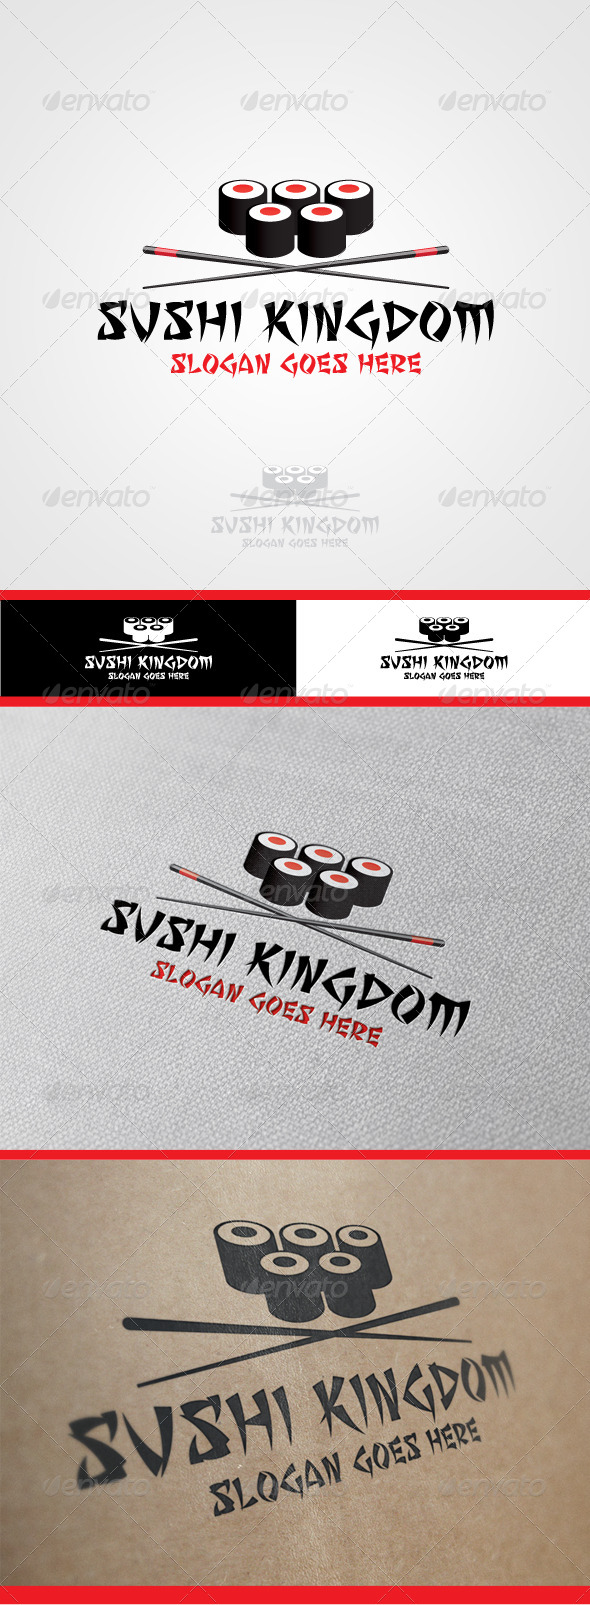 Sushi Kingdom Logo - Food Logo Templates